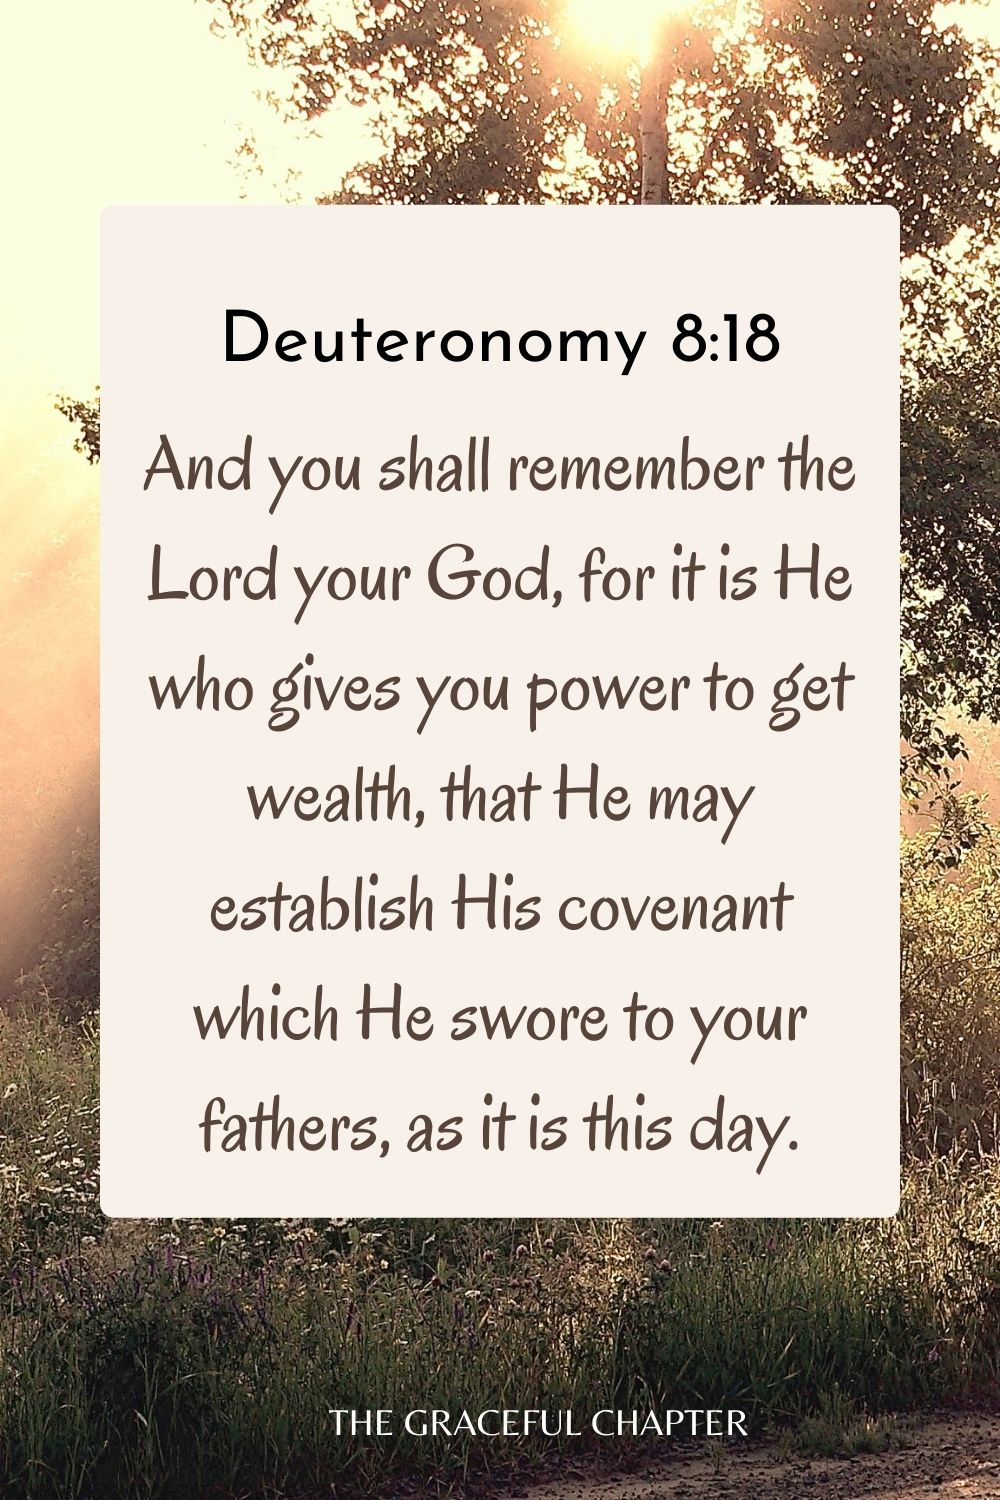 And you shall remember the Lord your God, for it is He who gives you power to get wealth, that He may establish His covenant which He swore to your fathers, as it is this day. Deuteronomy 8:18